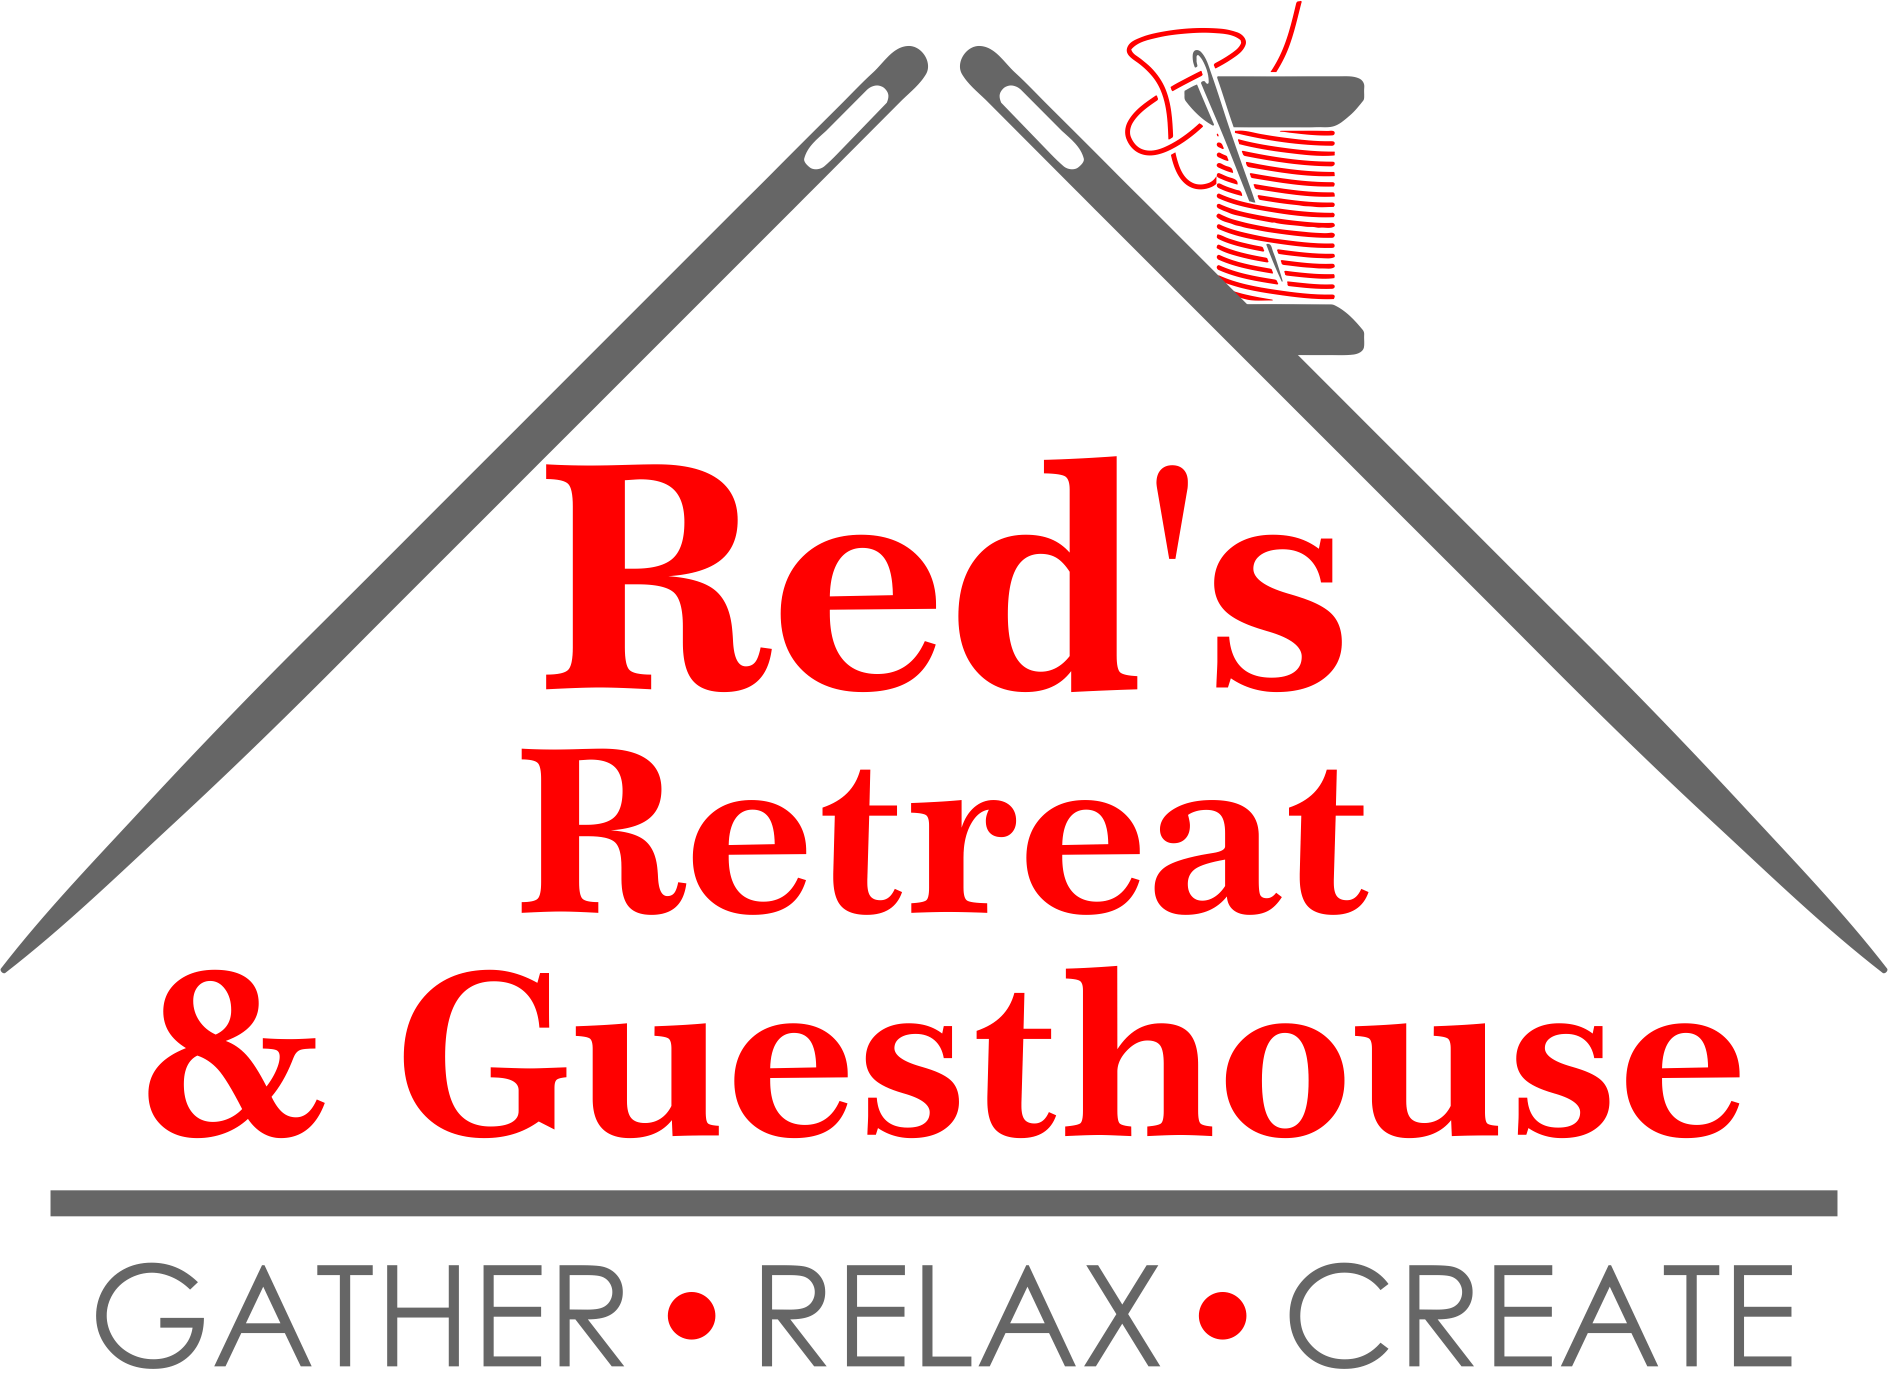 Red's Retreat & Guesthouse